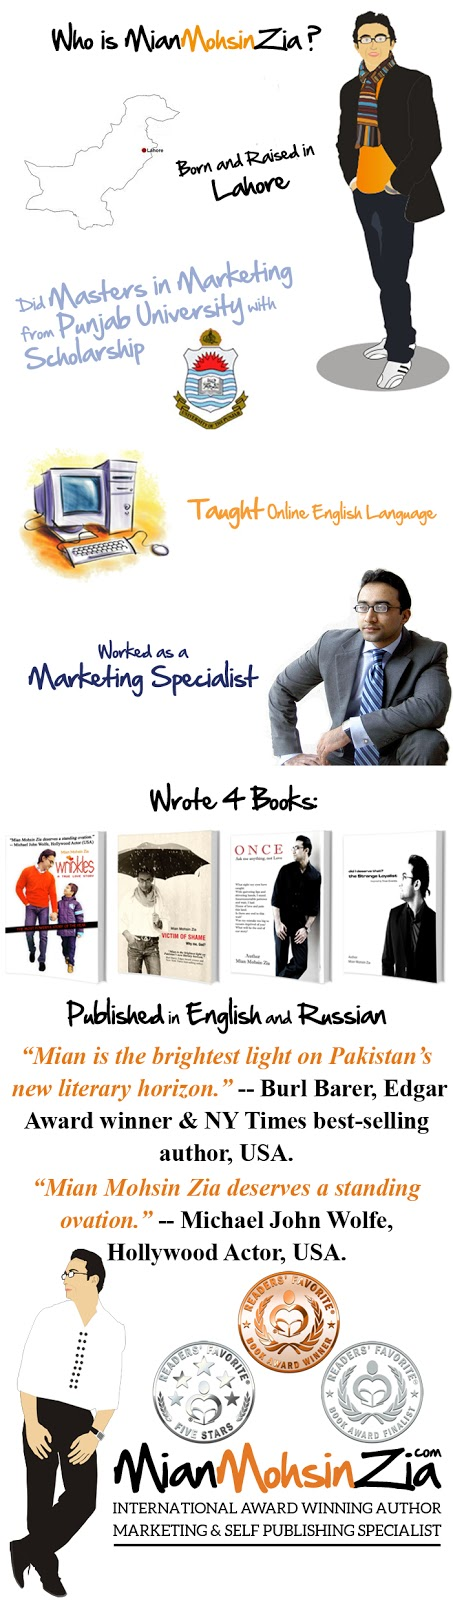 Mian Mohsin Zia - International Award Winning Author l Marketing Specialist l Self Publishing Specialist